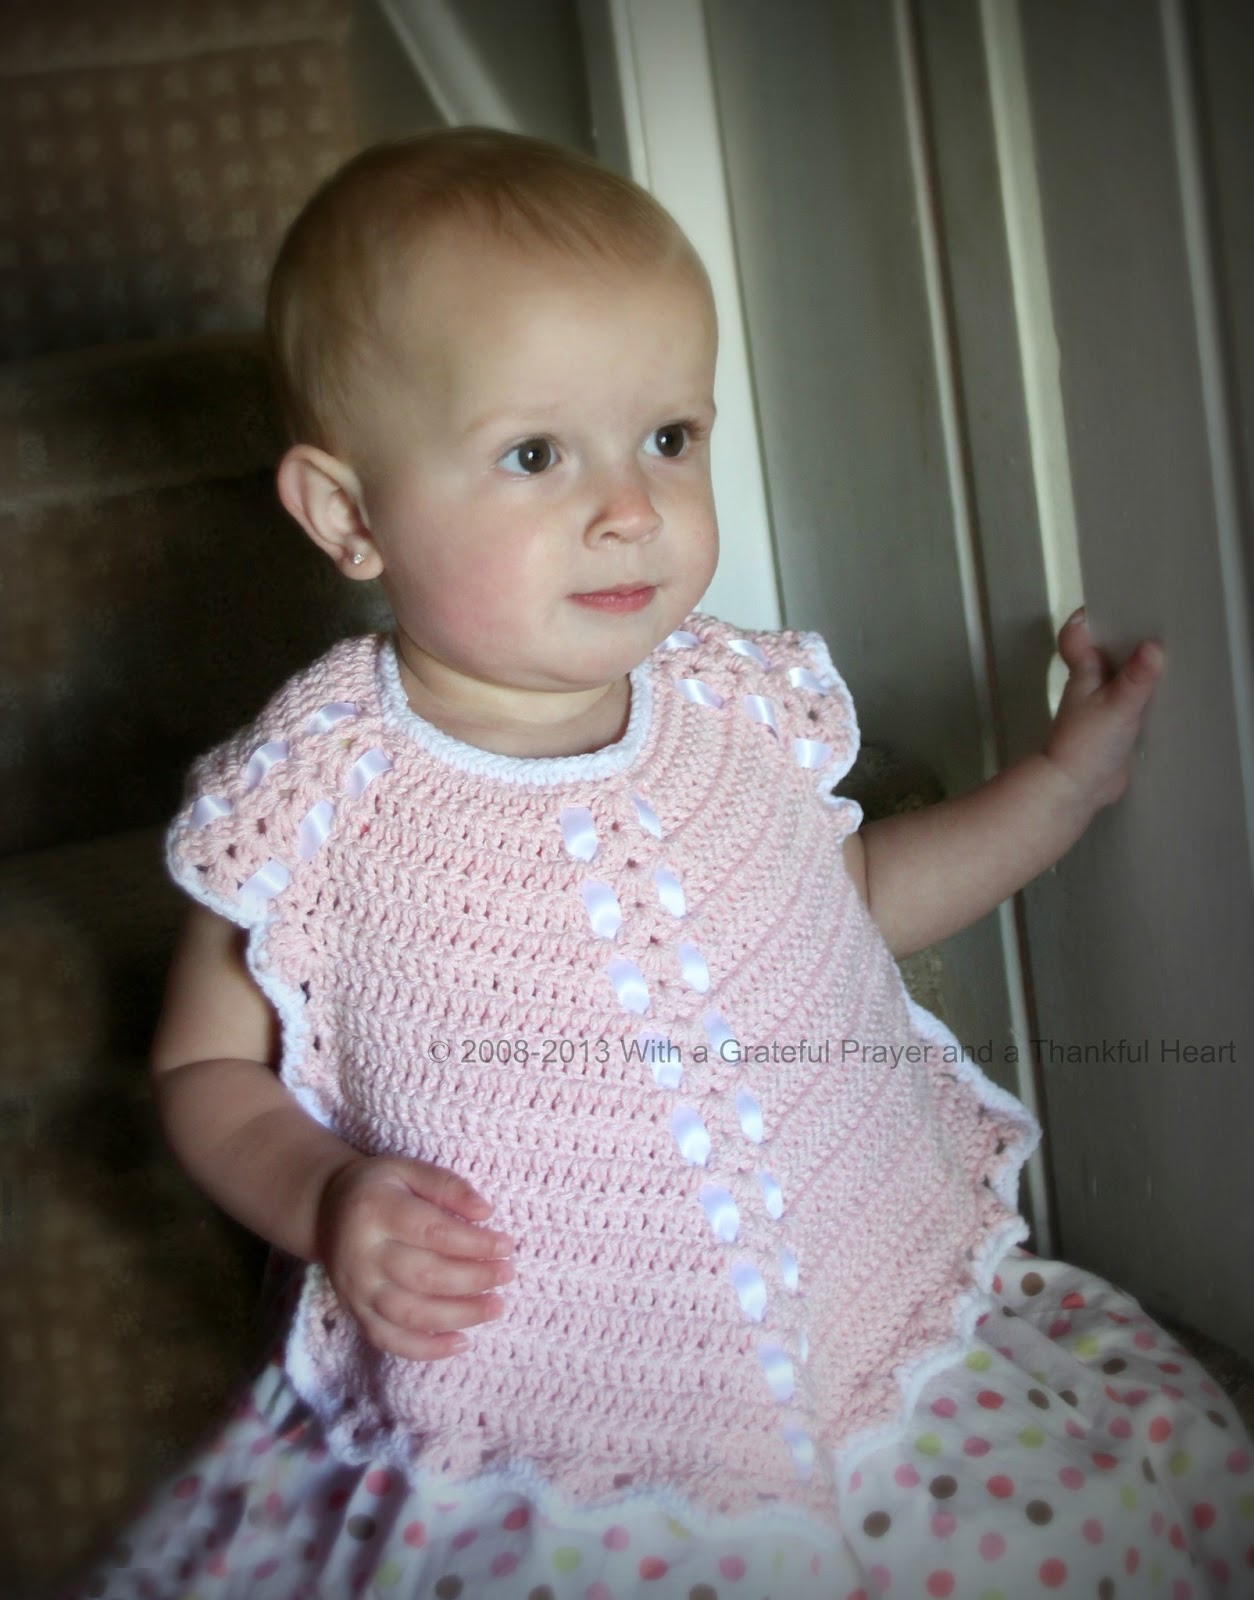 Crochet Baby Bib from Vintage Pattern | Grateful Prayer | Thankful Heart